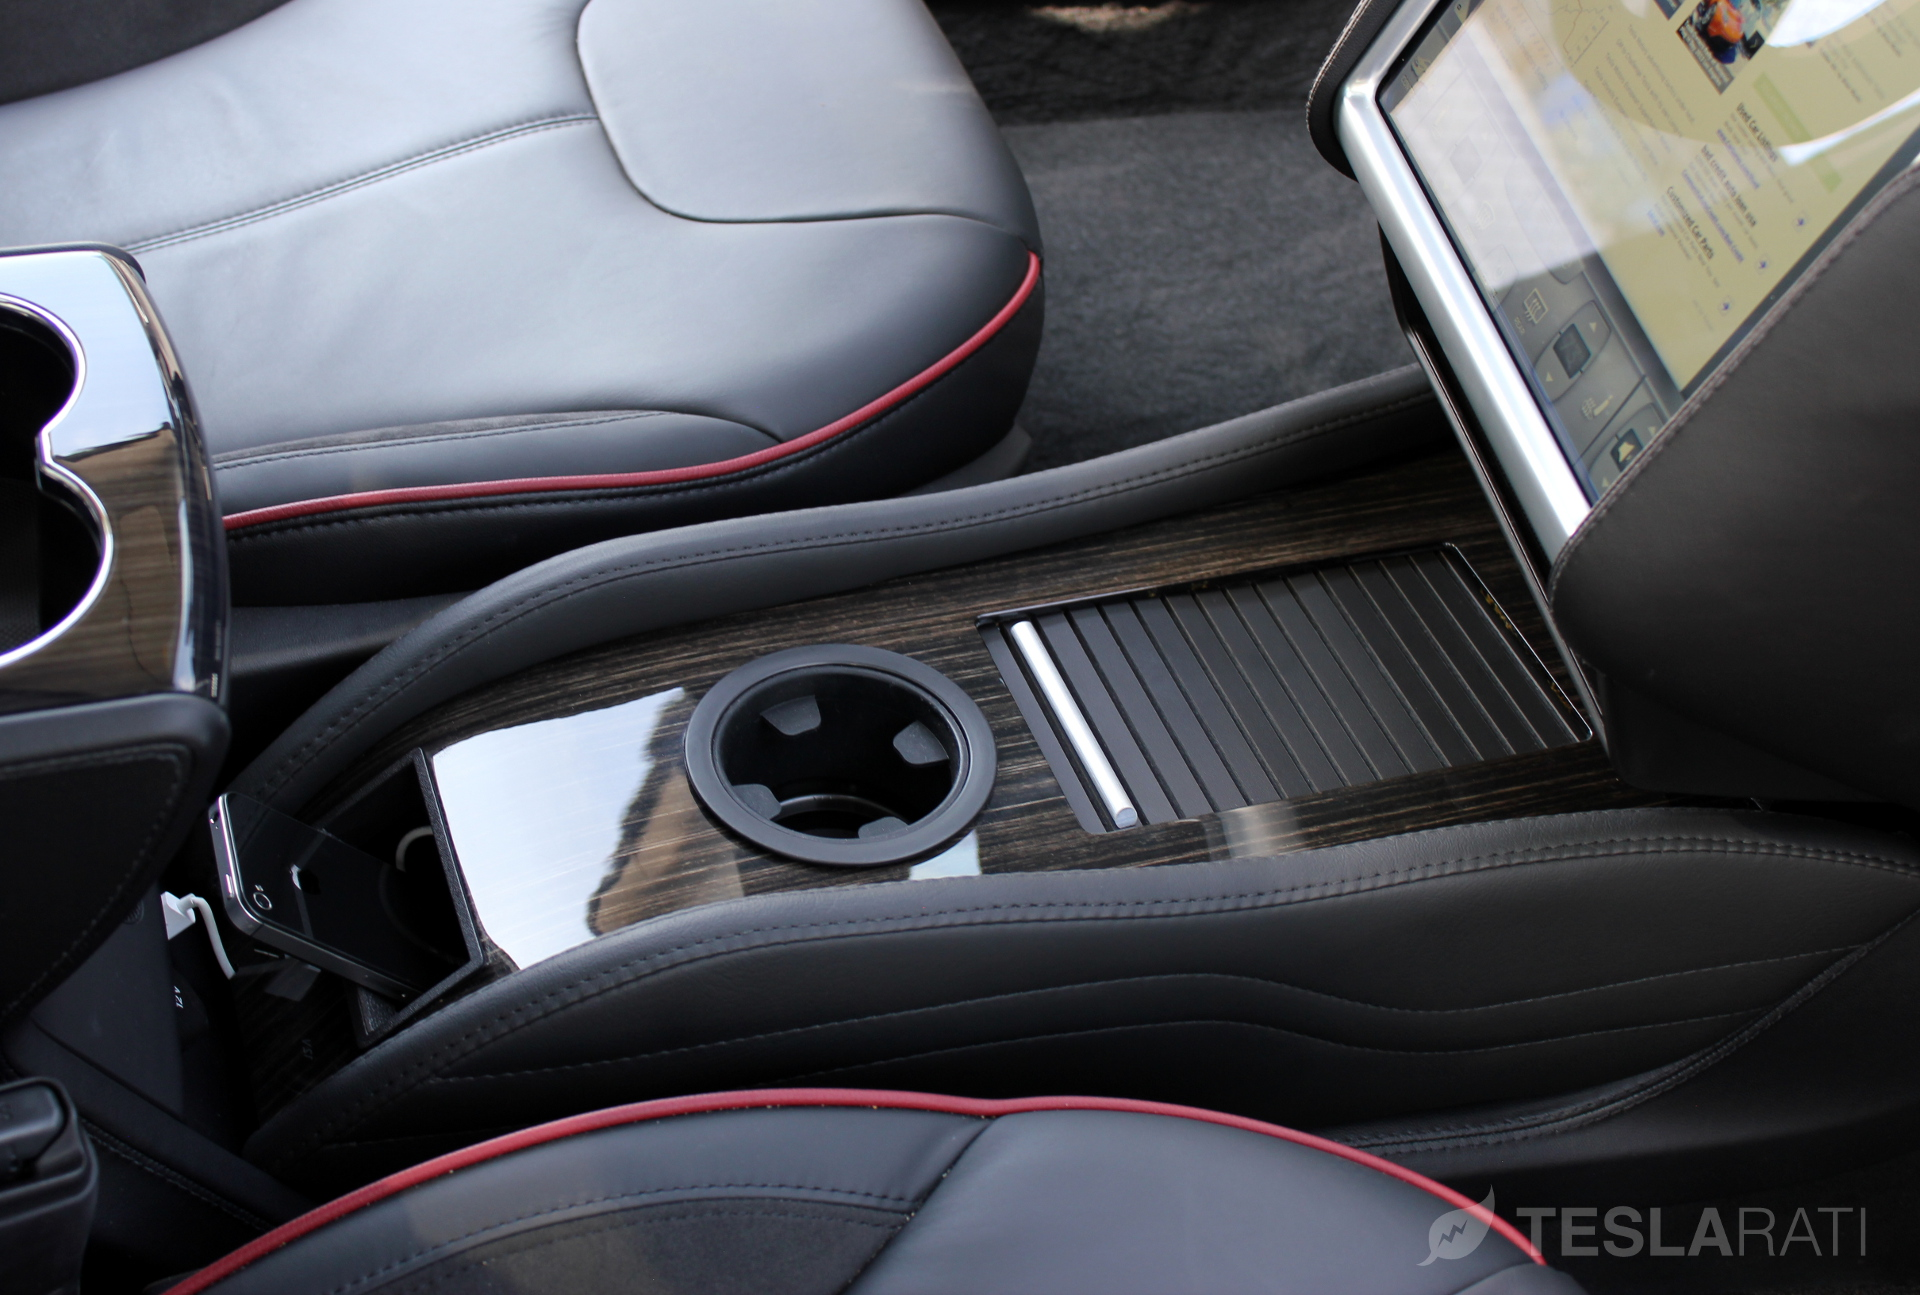 Tesla Model S Center Console Insert (CCI) Secured Storage